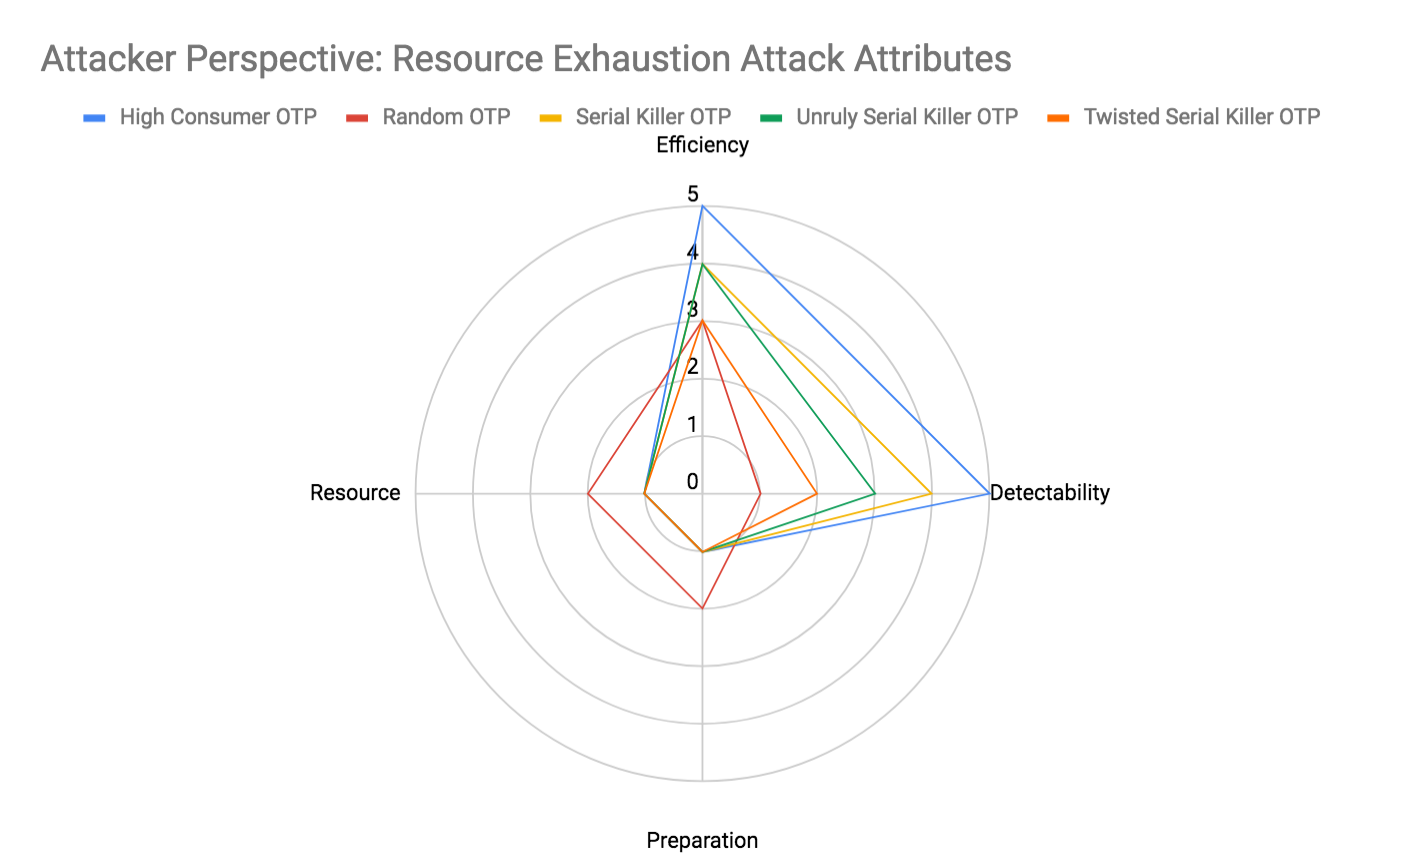 Attacker Perspective: Resource Exhaustion Attack Attributes